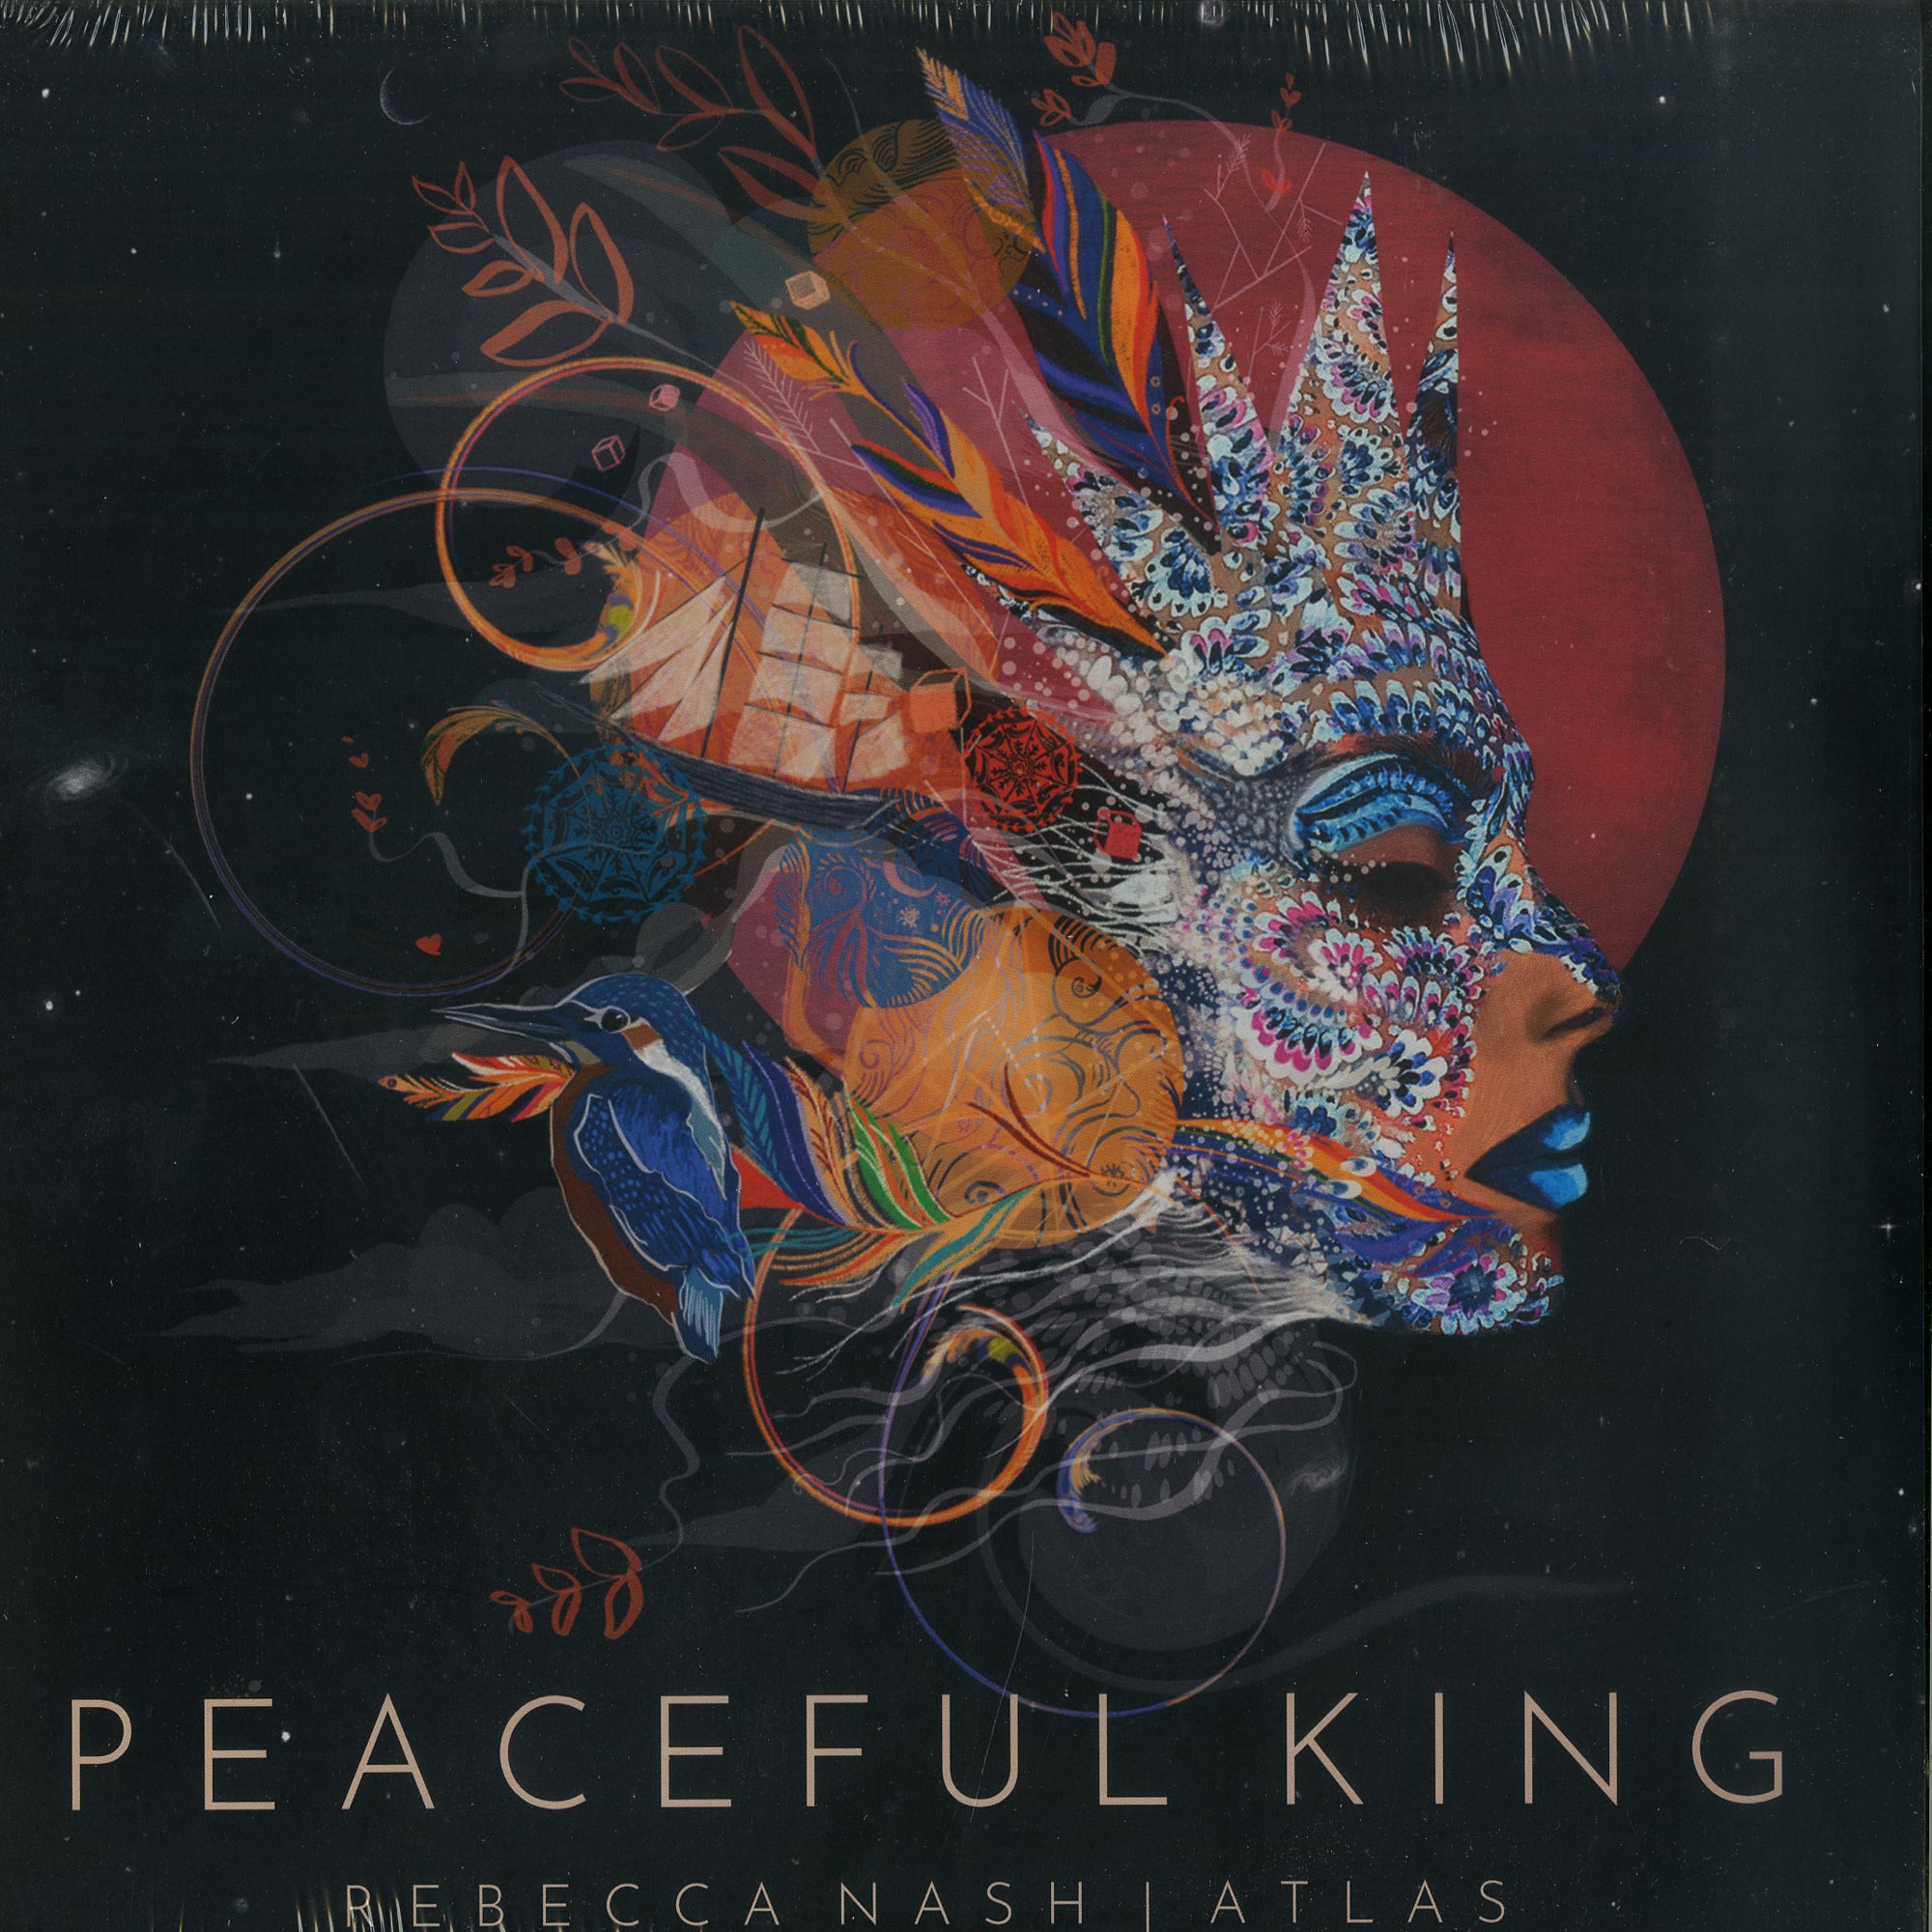 Rebecca Nash - PEACEFUL KING